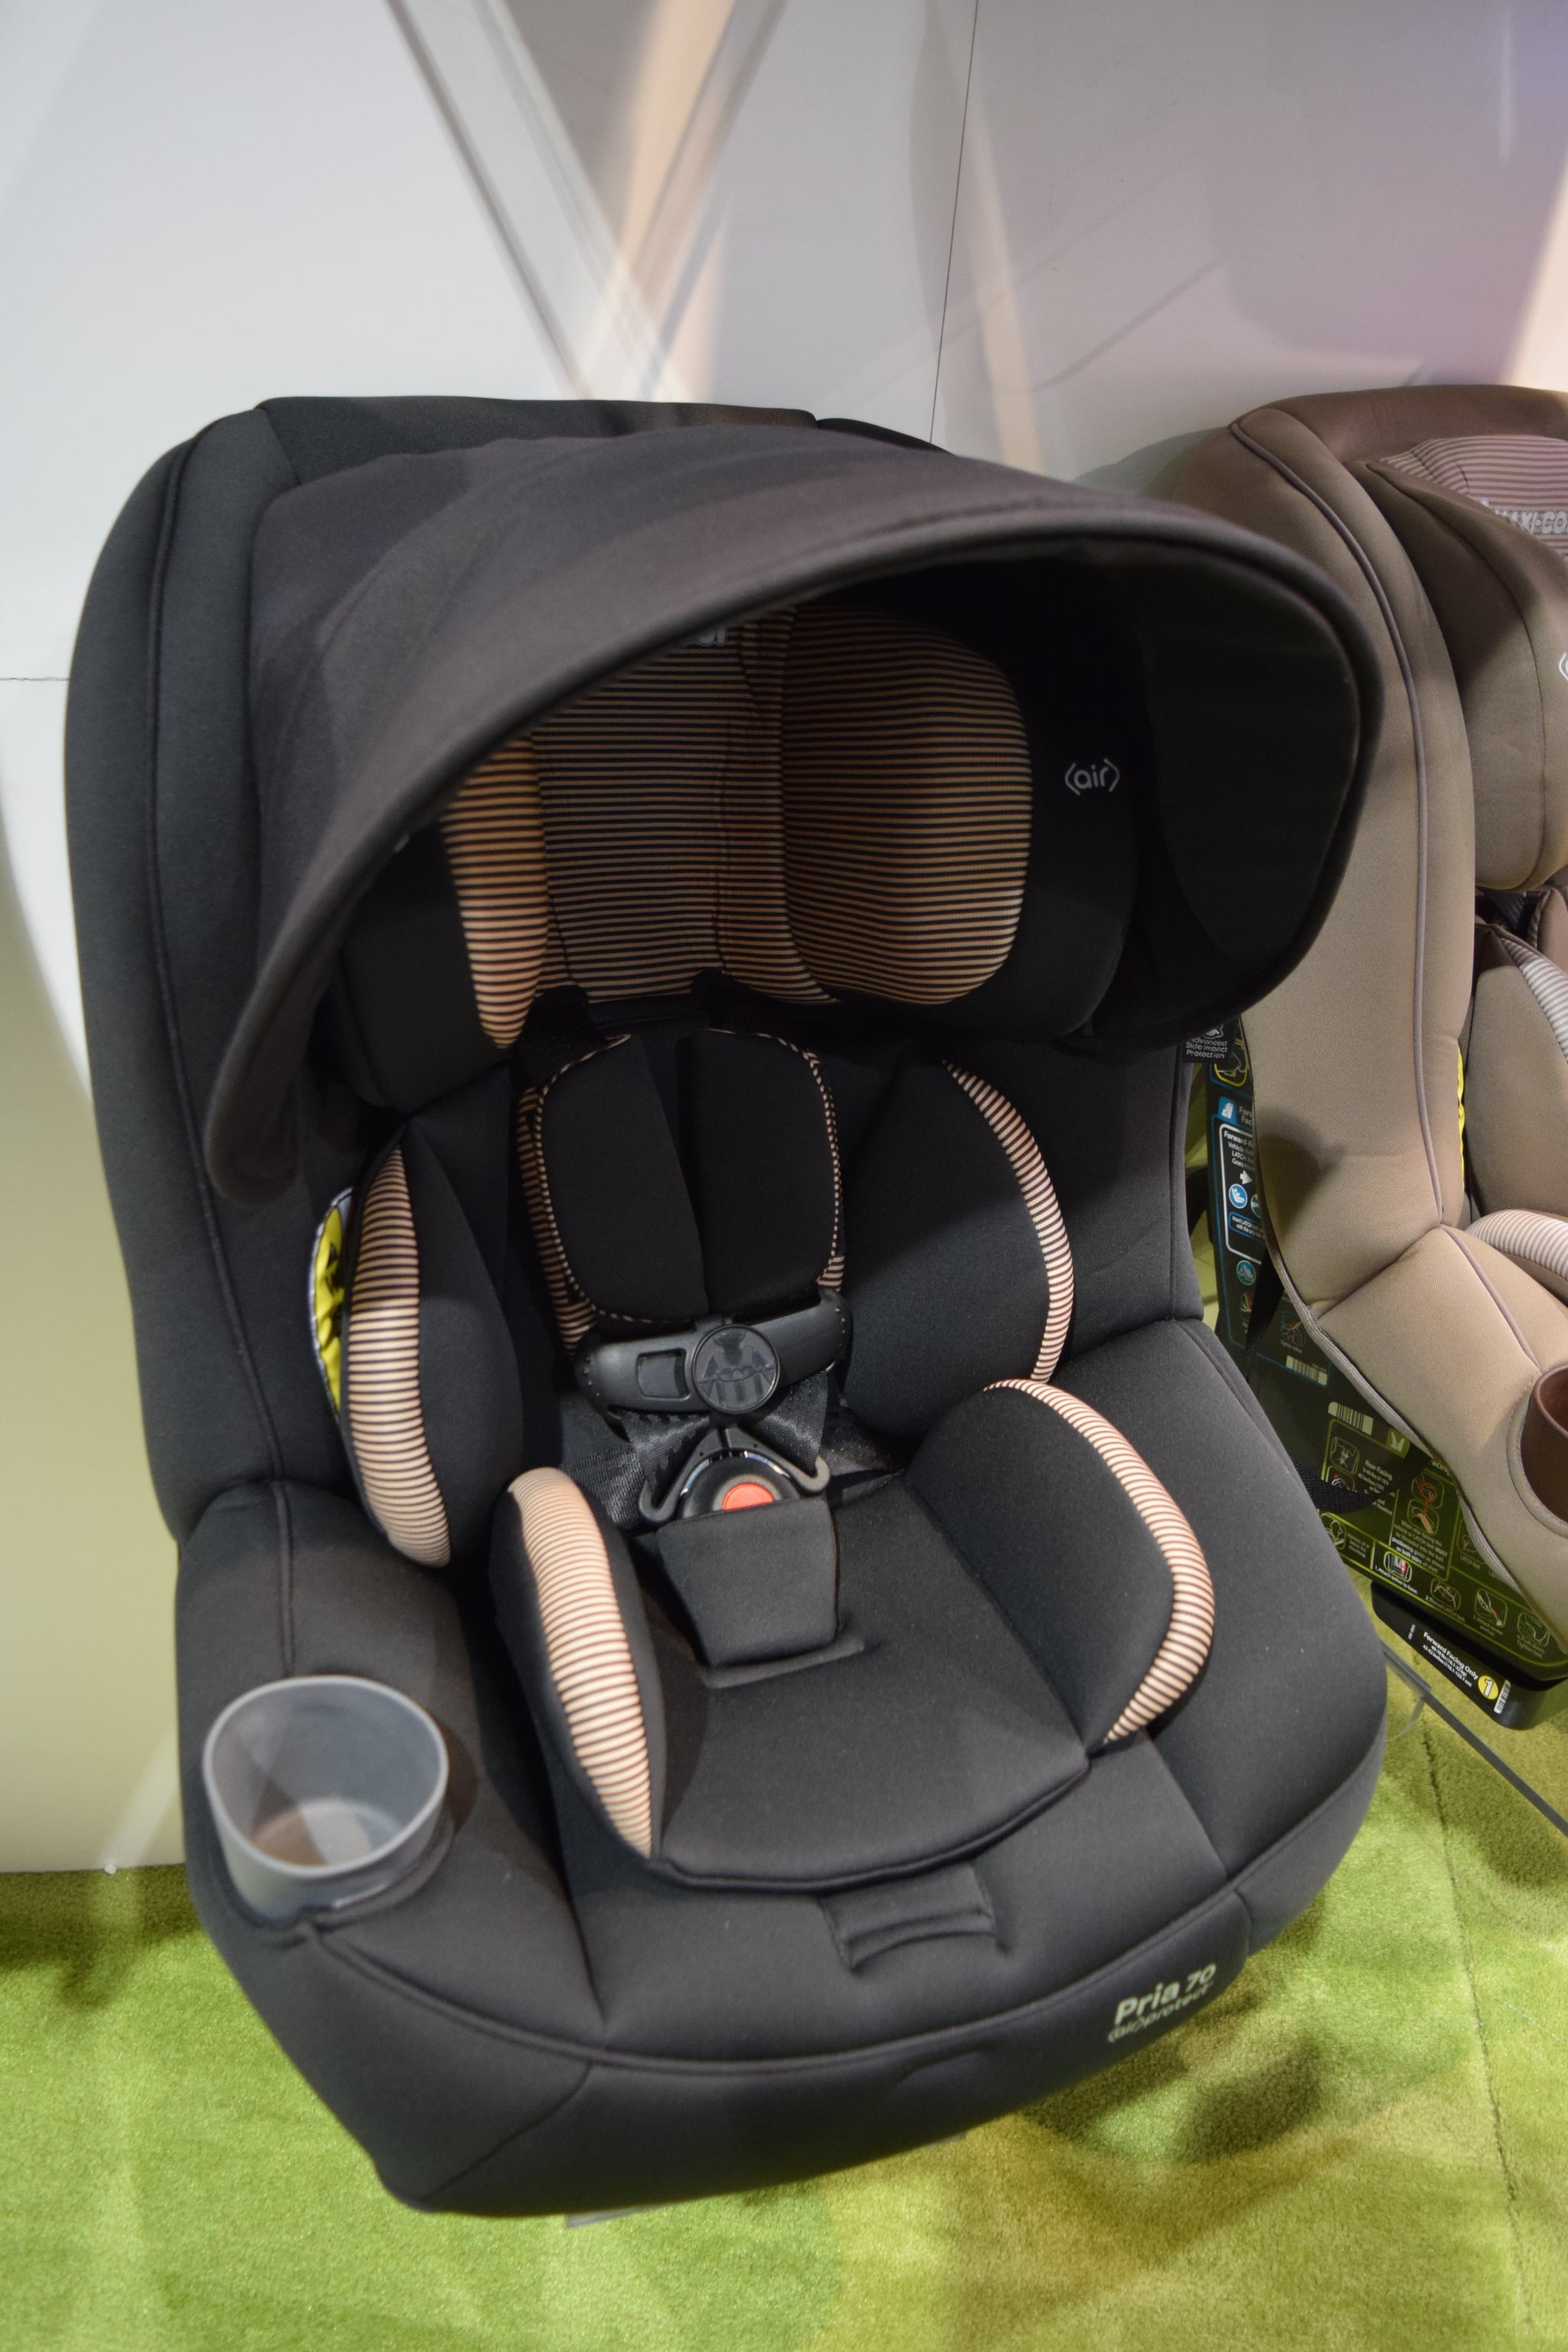 maxi cosi pria 70 convertible car seat 120 new baby and kid products we can 39 t wait to see in. Black Bedroom Furniture Sets. Home Design Ideas